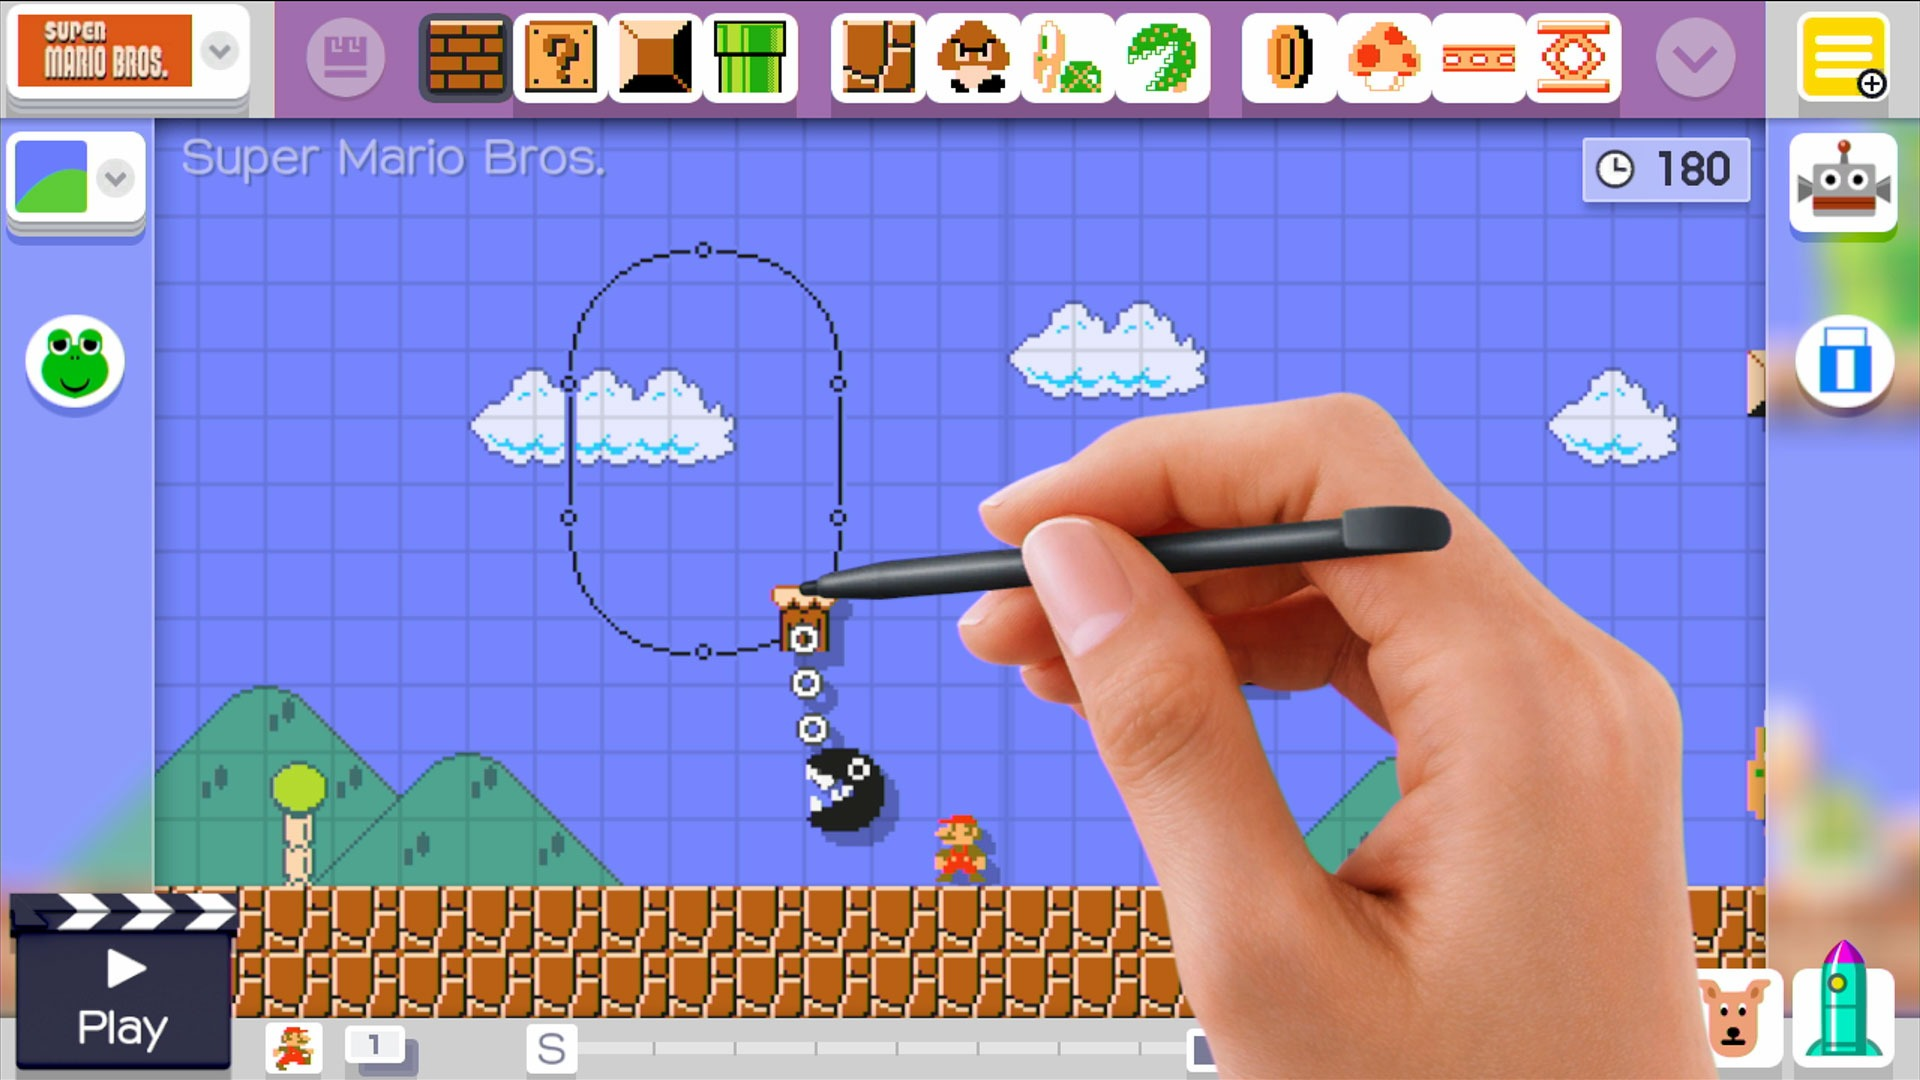 event-nintendo-post-e3-2015-super-mario-maker-2